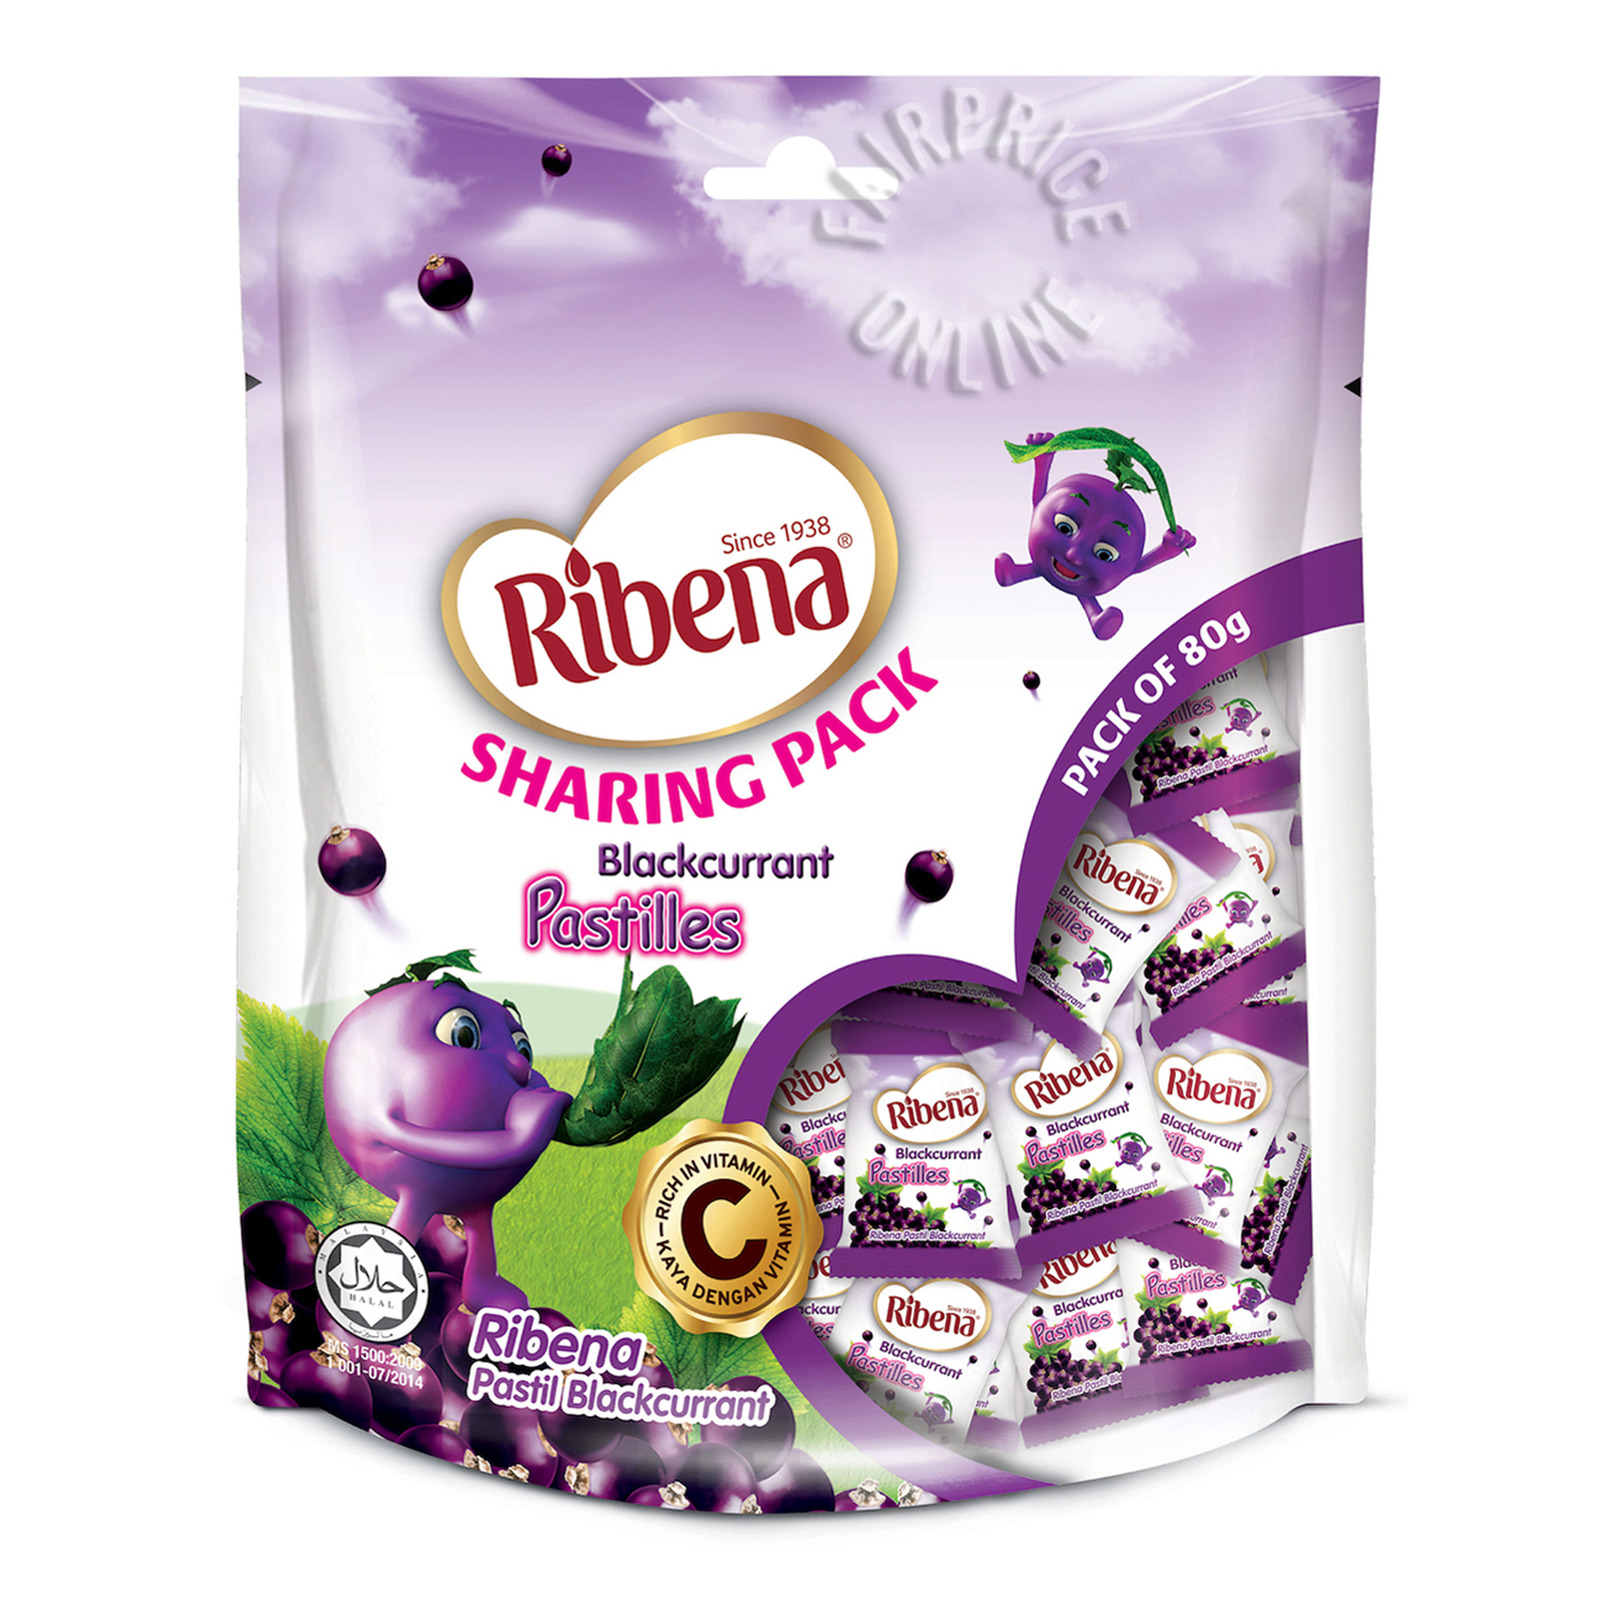 Ribena Blackcurrant Pastilles (Sharing Pack)